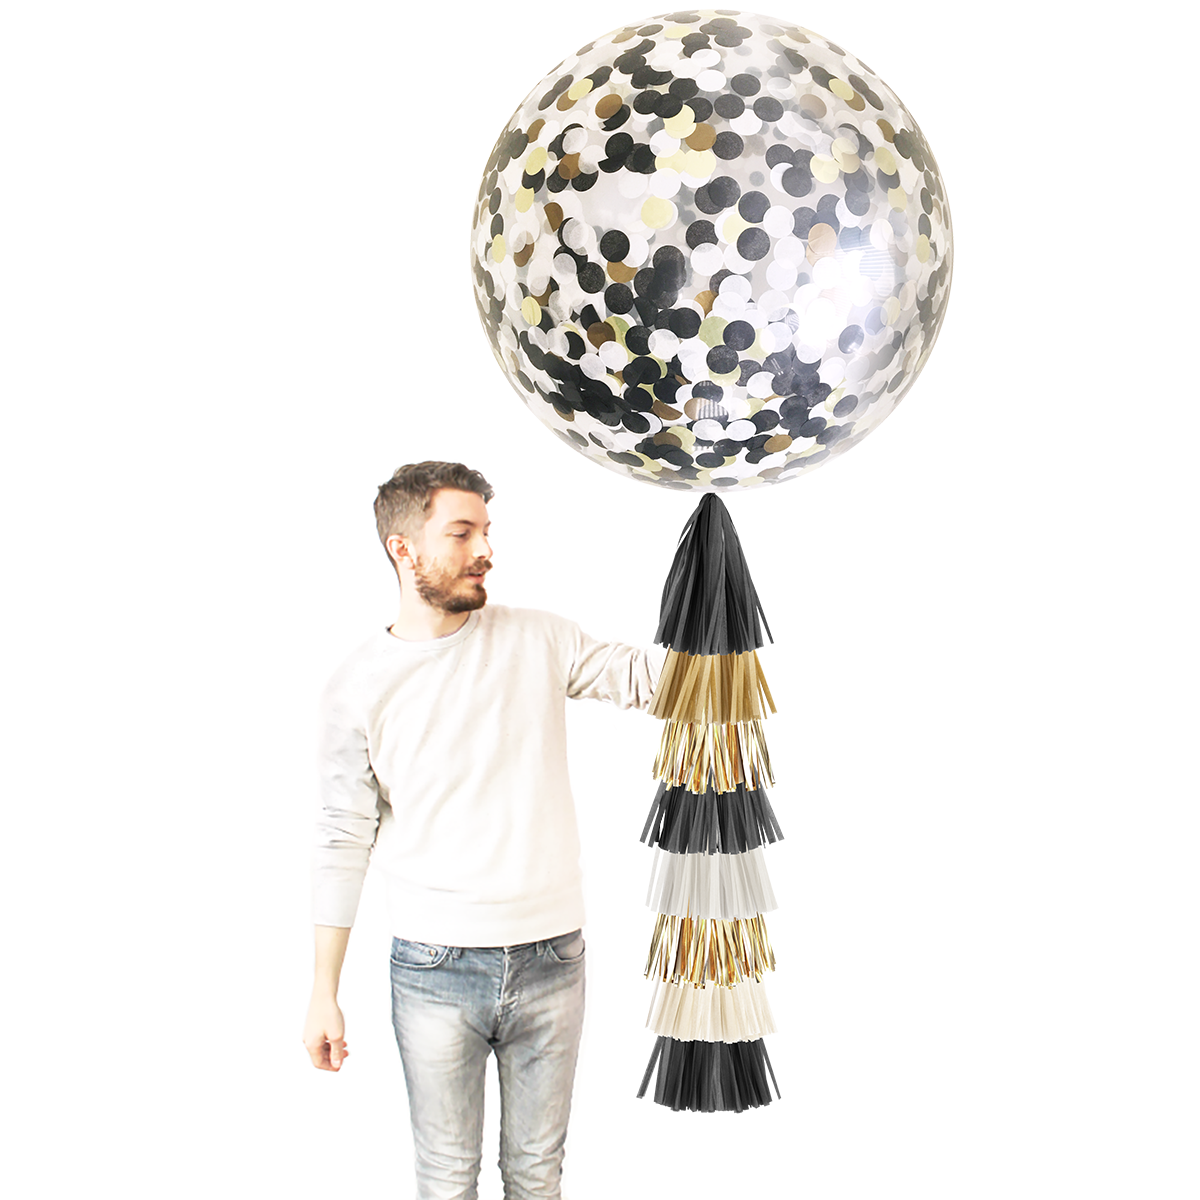 Black & Gold Confetti Balloon w/ DIY Tassel Tail | The Party Darling